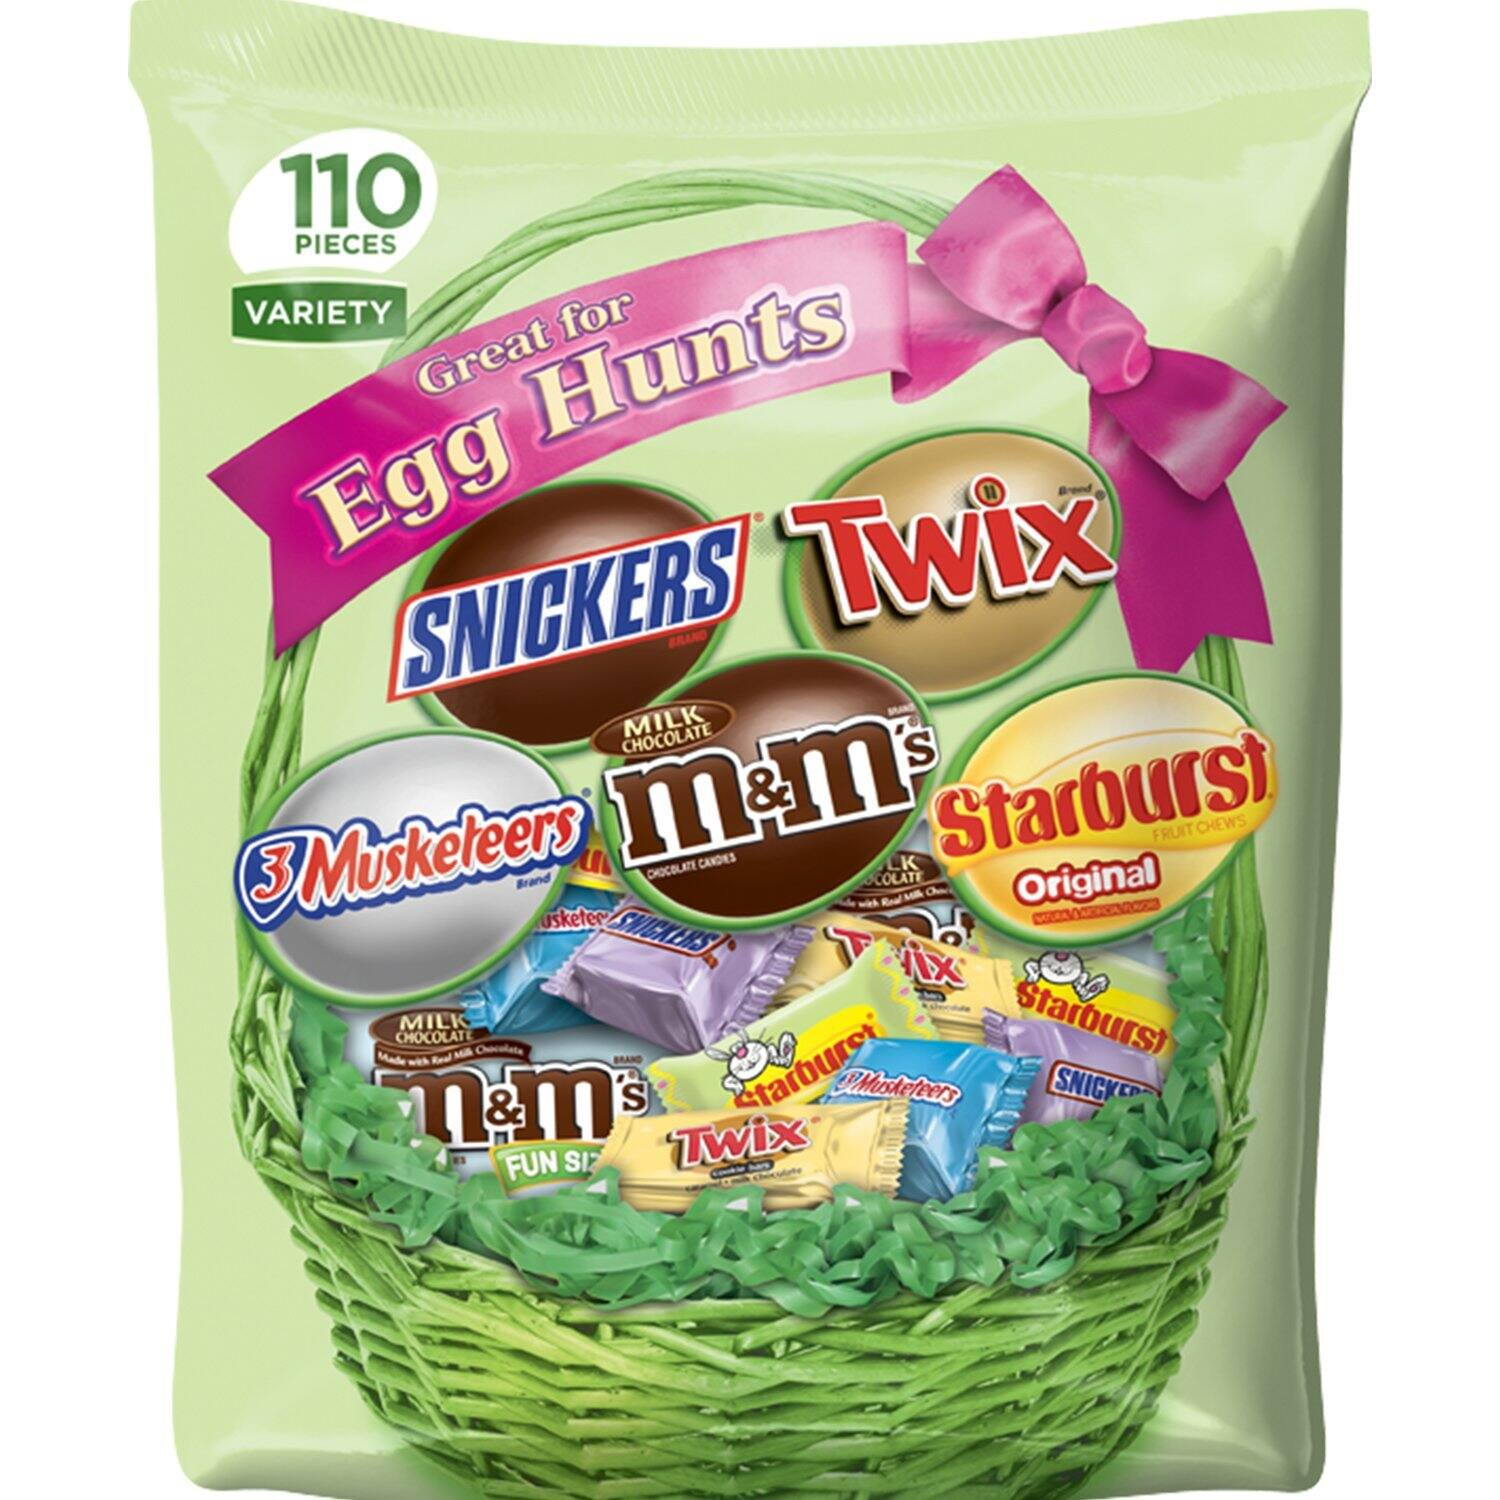 save 20% or more on Select Easter Treat $8.25